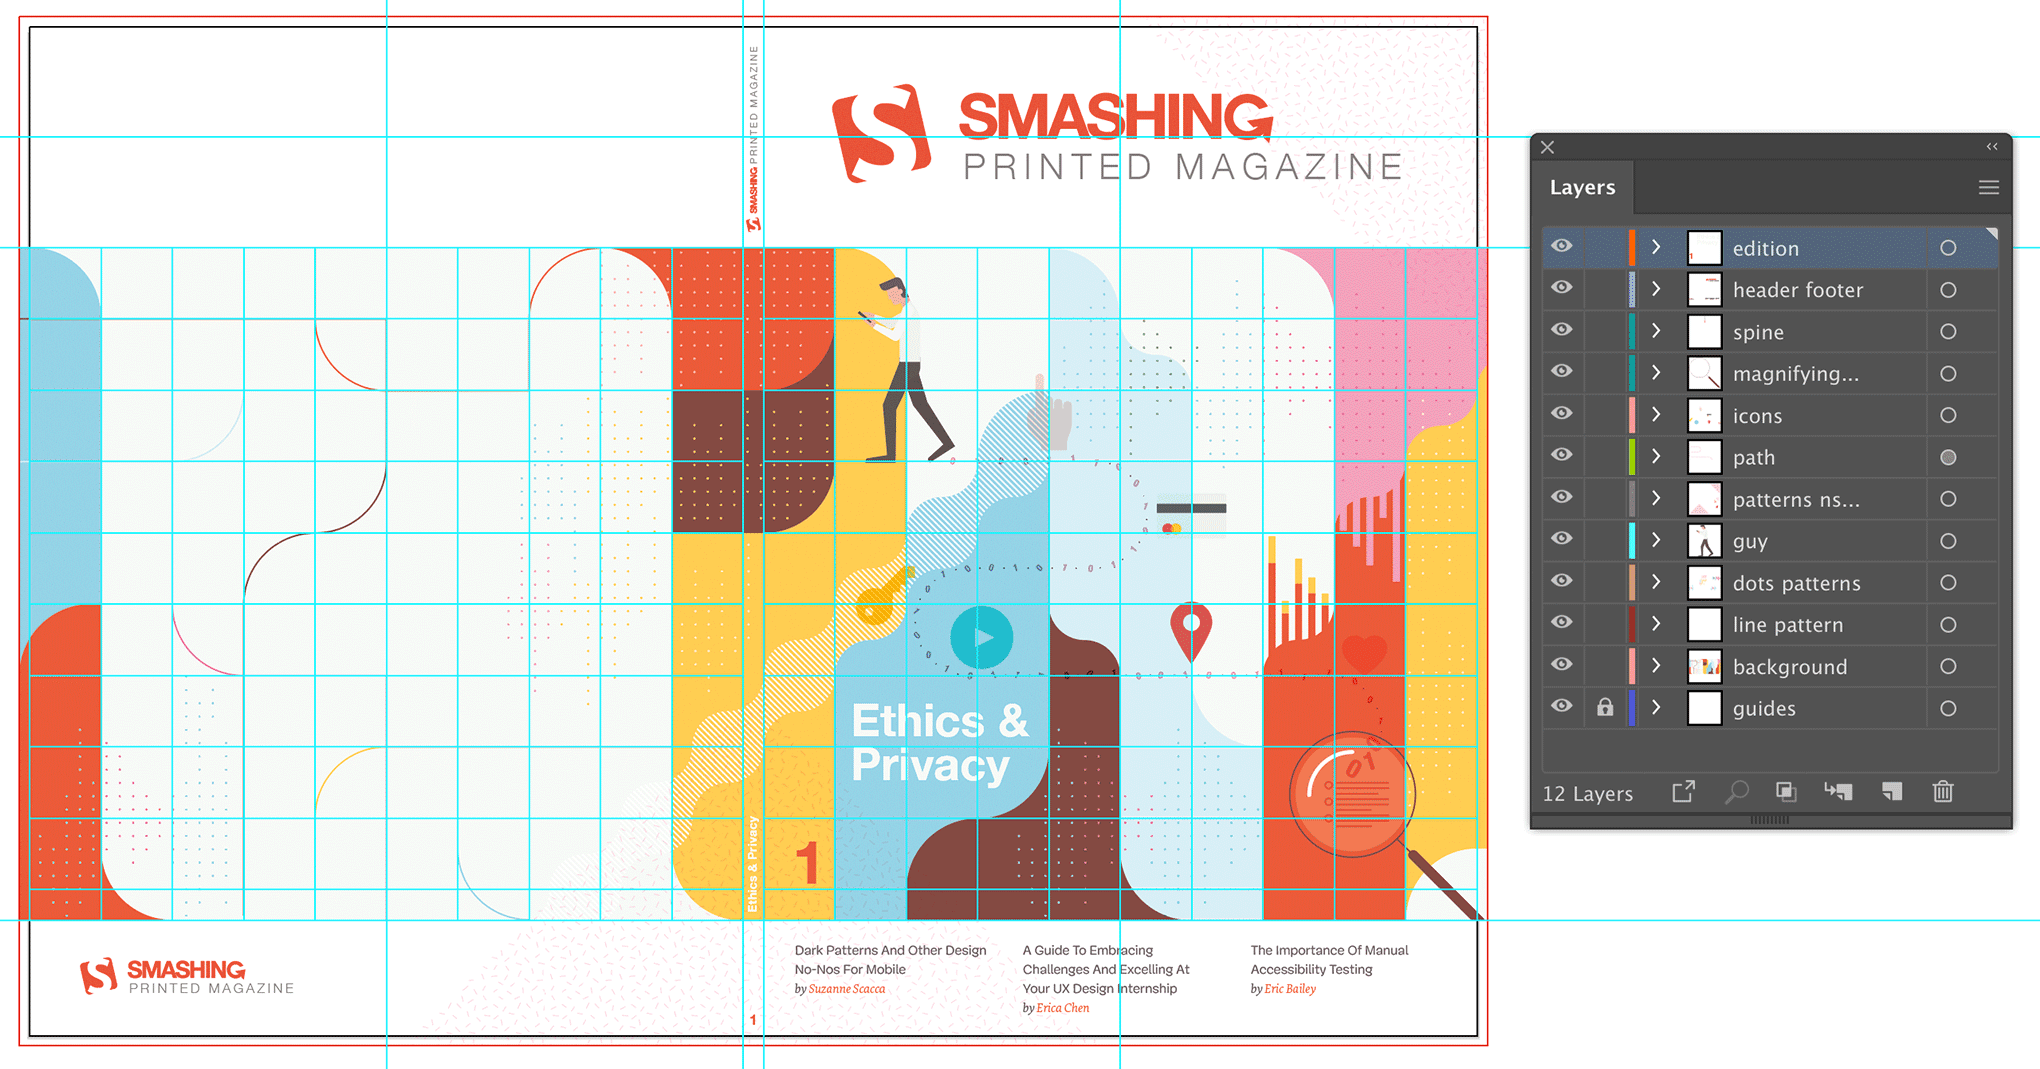 Final cover design shown in Adobe Illustrator with grid guides and Layers panel.